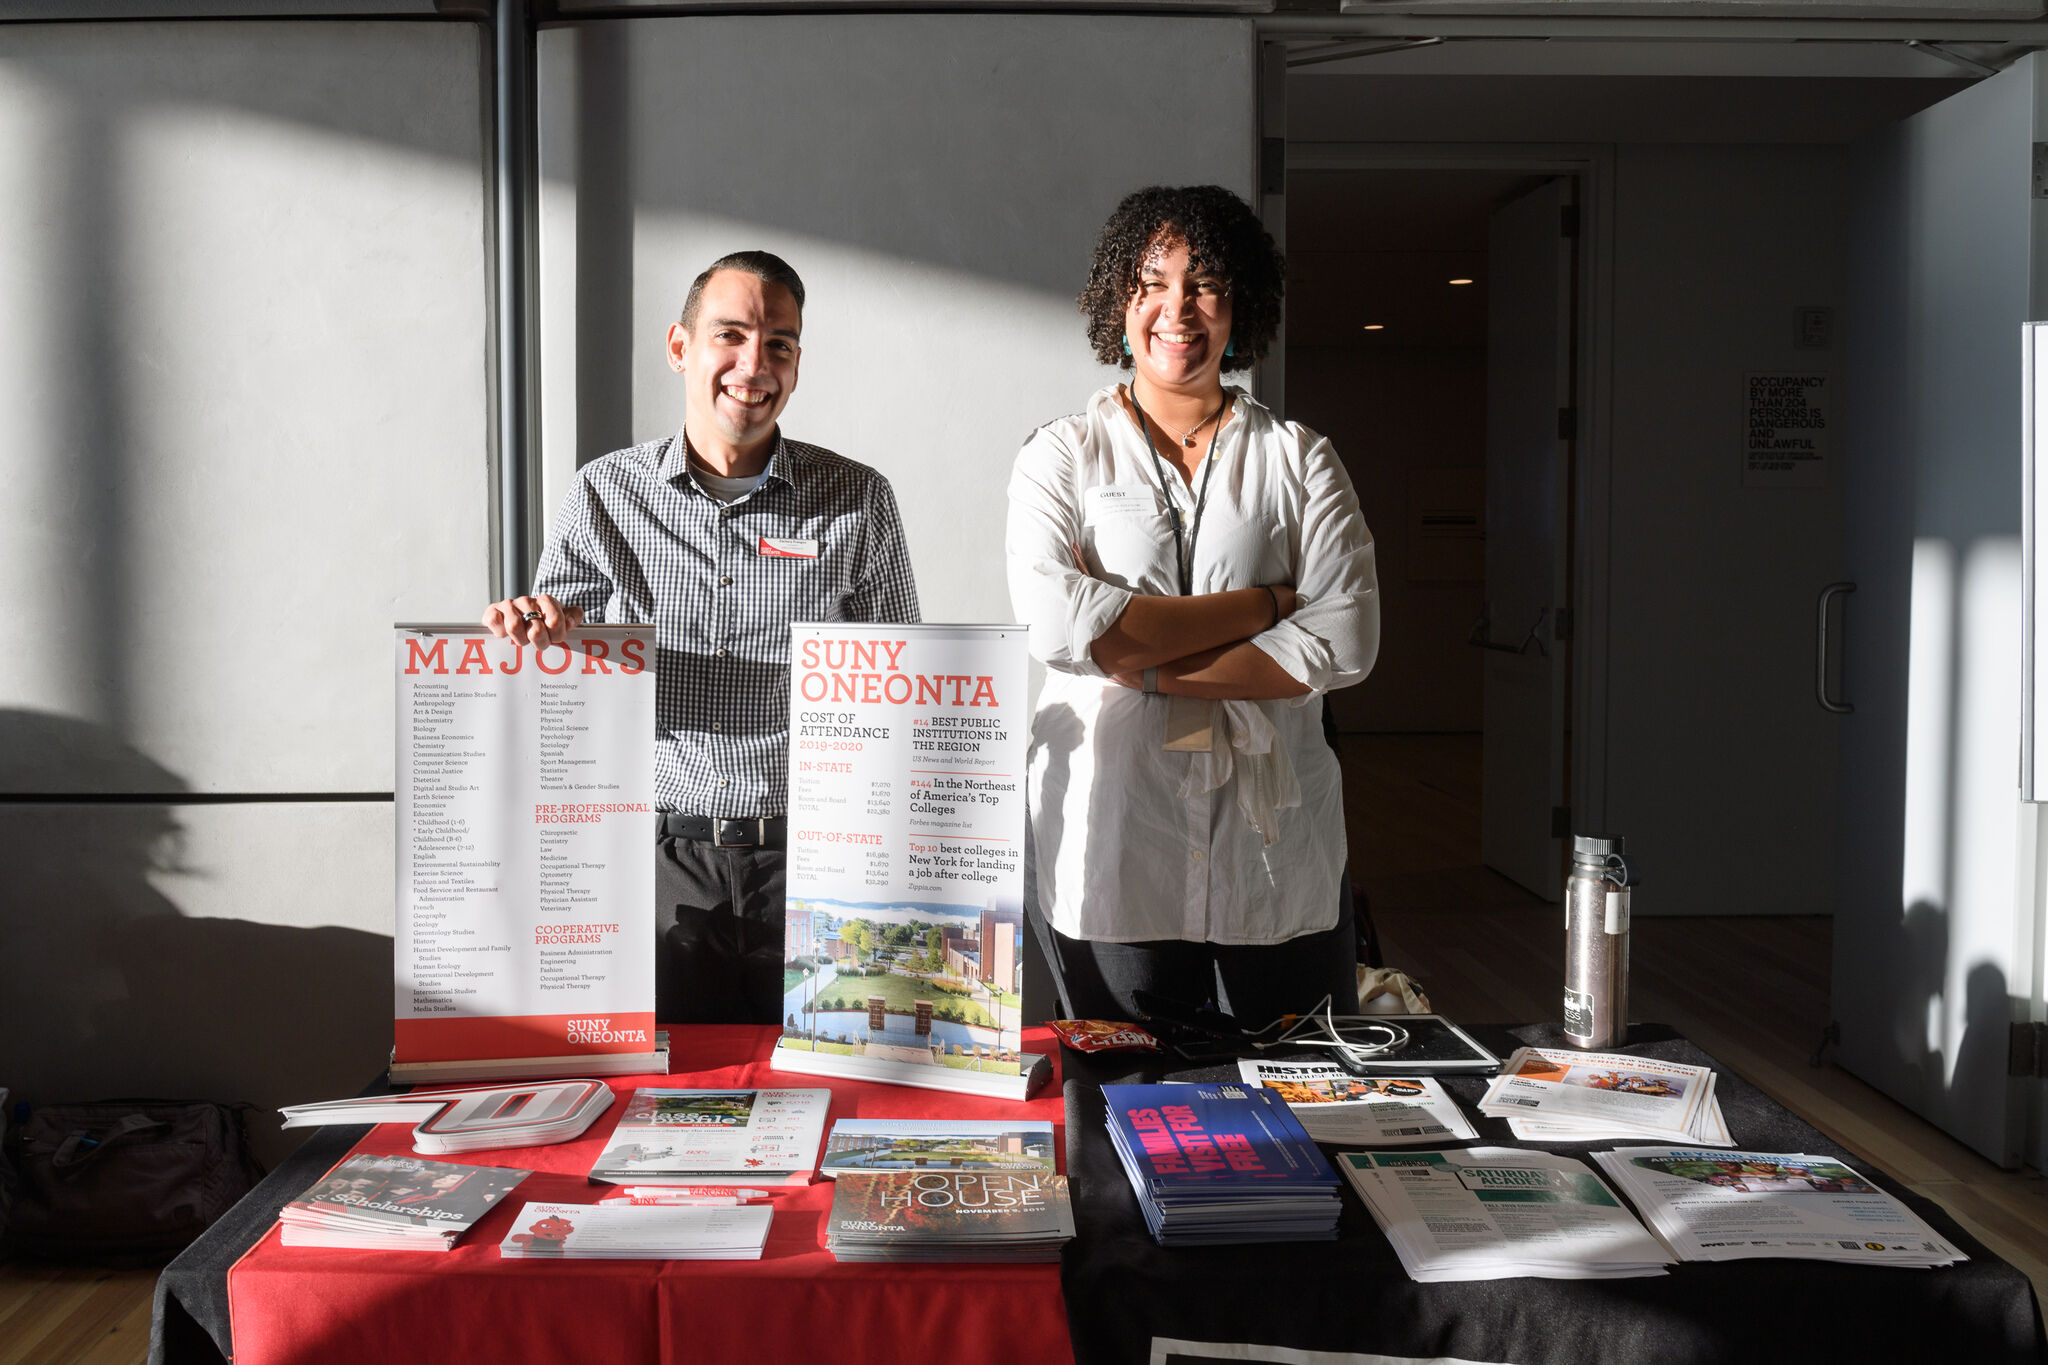 Two people stand behind a table full of college marketing materials.